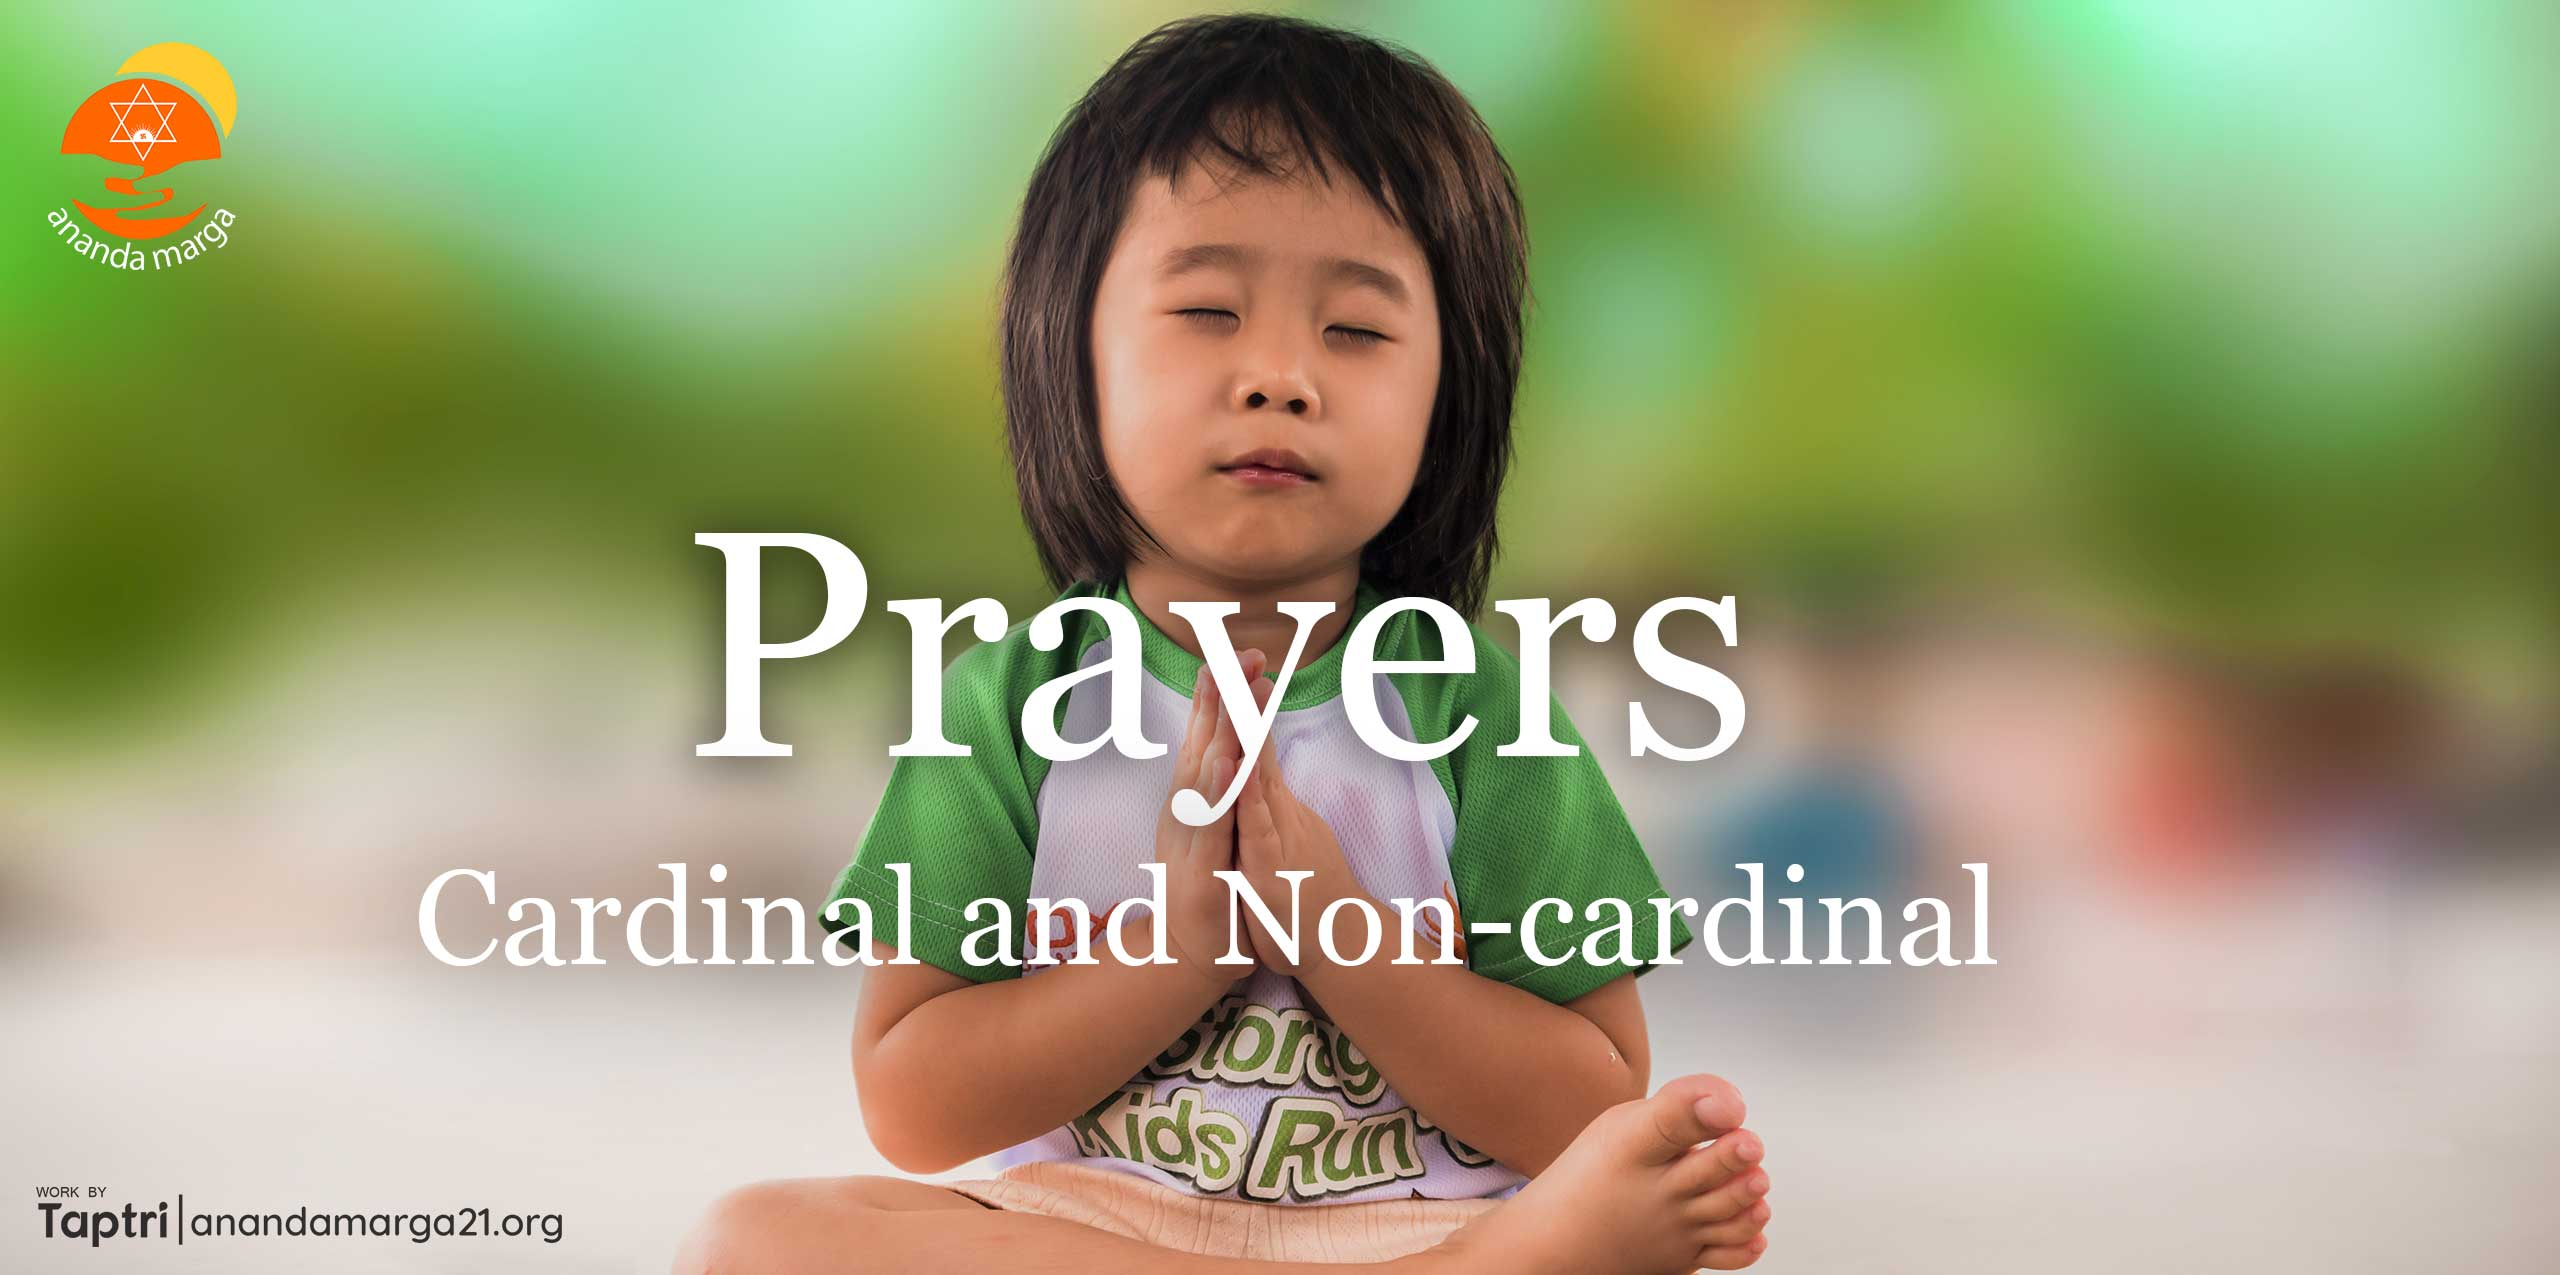 Prayers-Cardinal-and-Non-cardinal-Ananda-Vacanamrtm-05-anandamarga